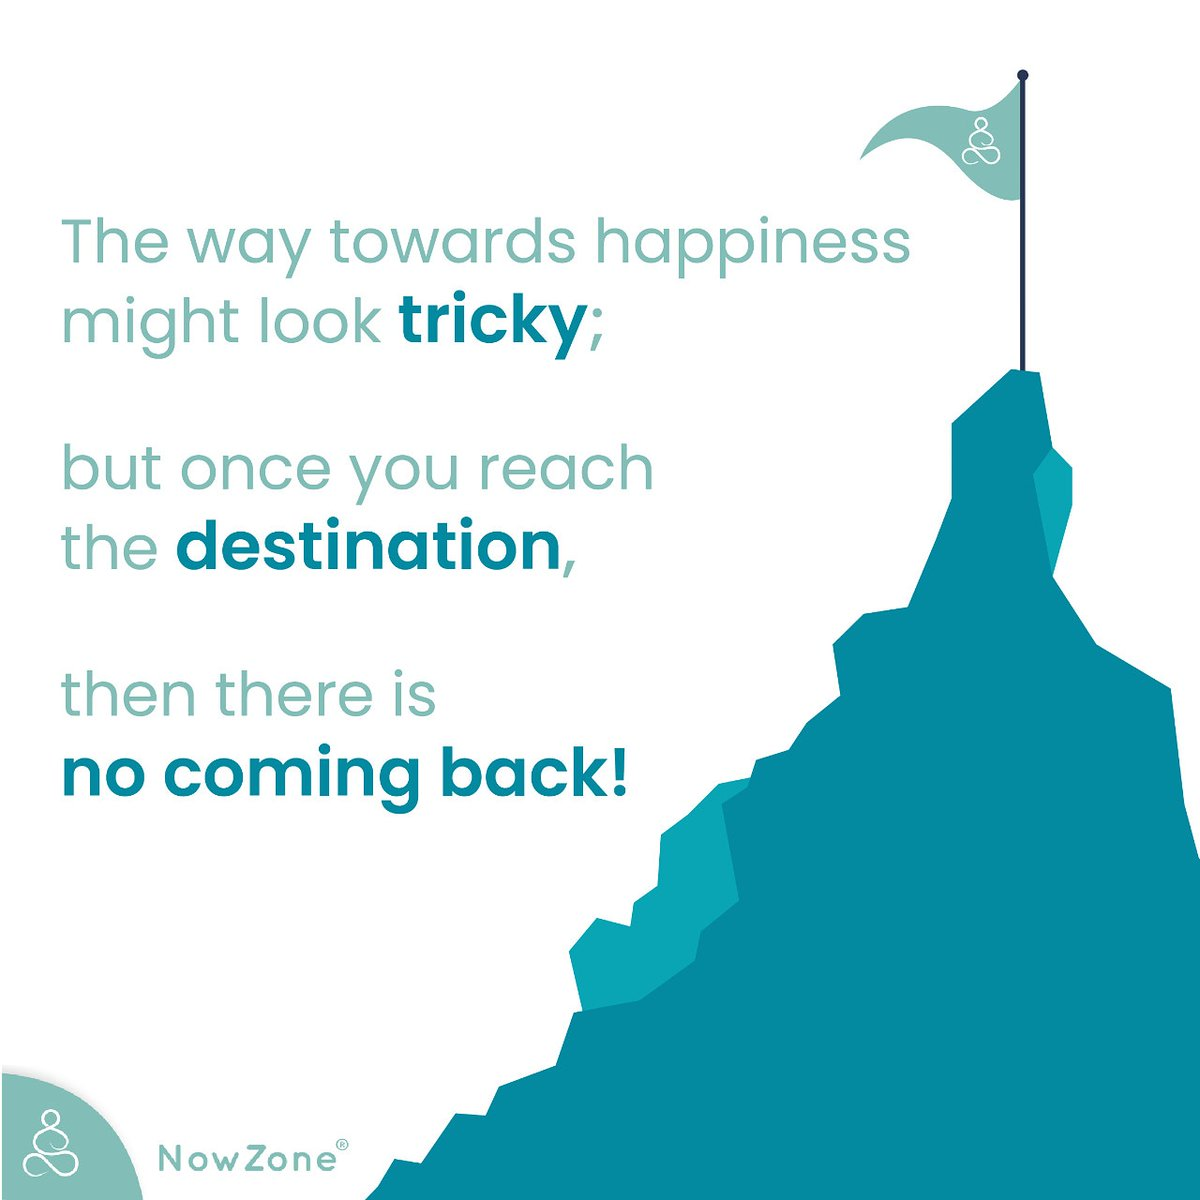 Trust the journey and the path that leads to 'pure bliss.'🧘🏻♂️ 😌  To install NowZone on Android click https://t.co/hDBxSJIuv3  To install NowZone on iOS click https://t.co/lz0CBB5KoR.   #nowfulness #nowzonelife #meditationspace #meditation #calm #mind #android #ios #stress https://t.co/gqBvSajQGJ